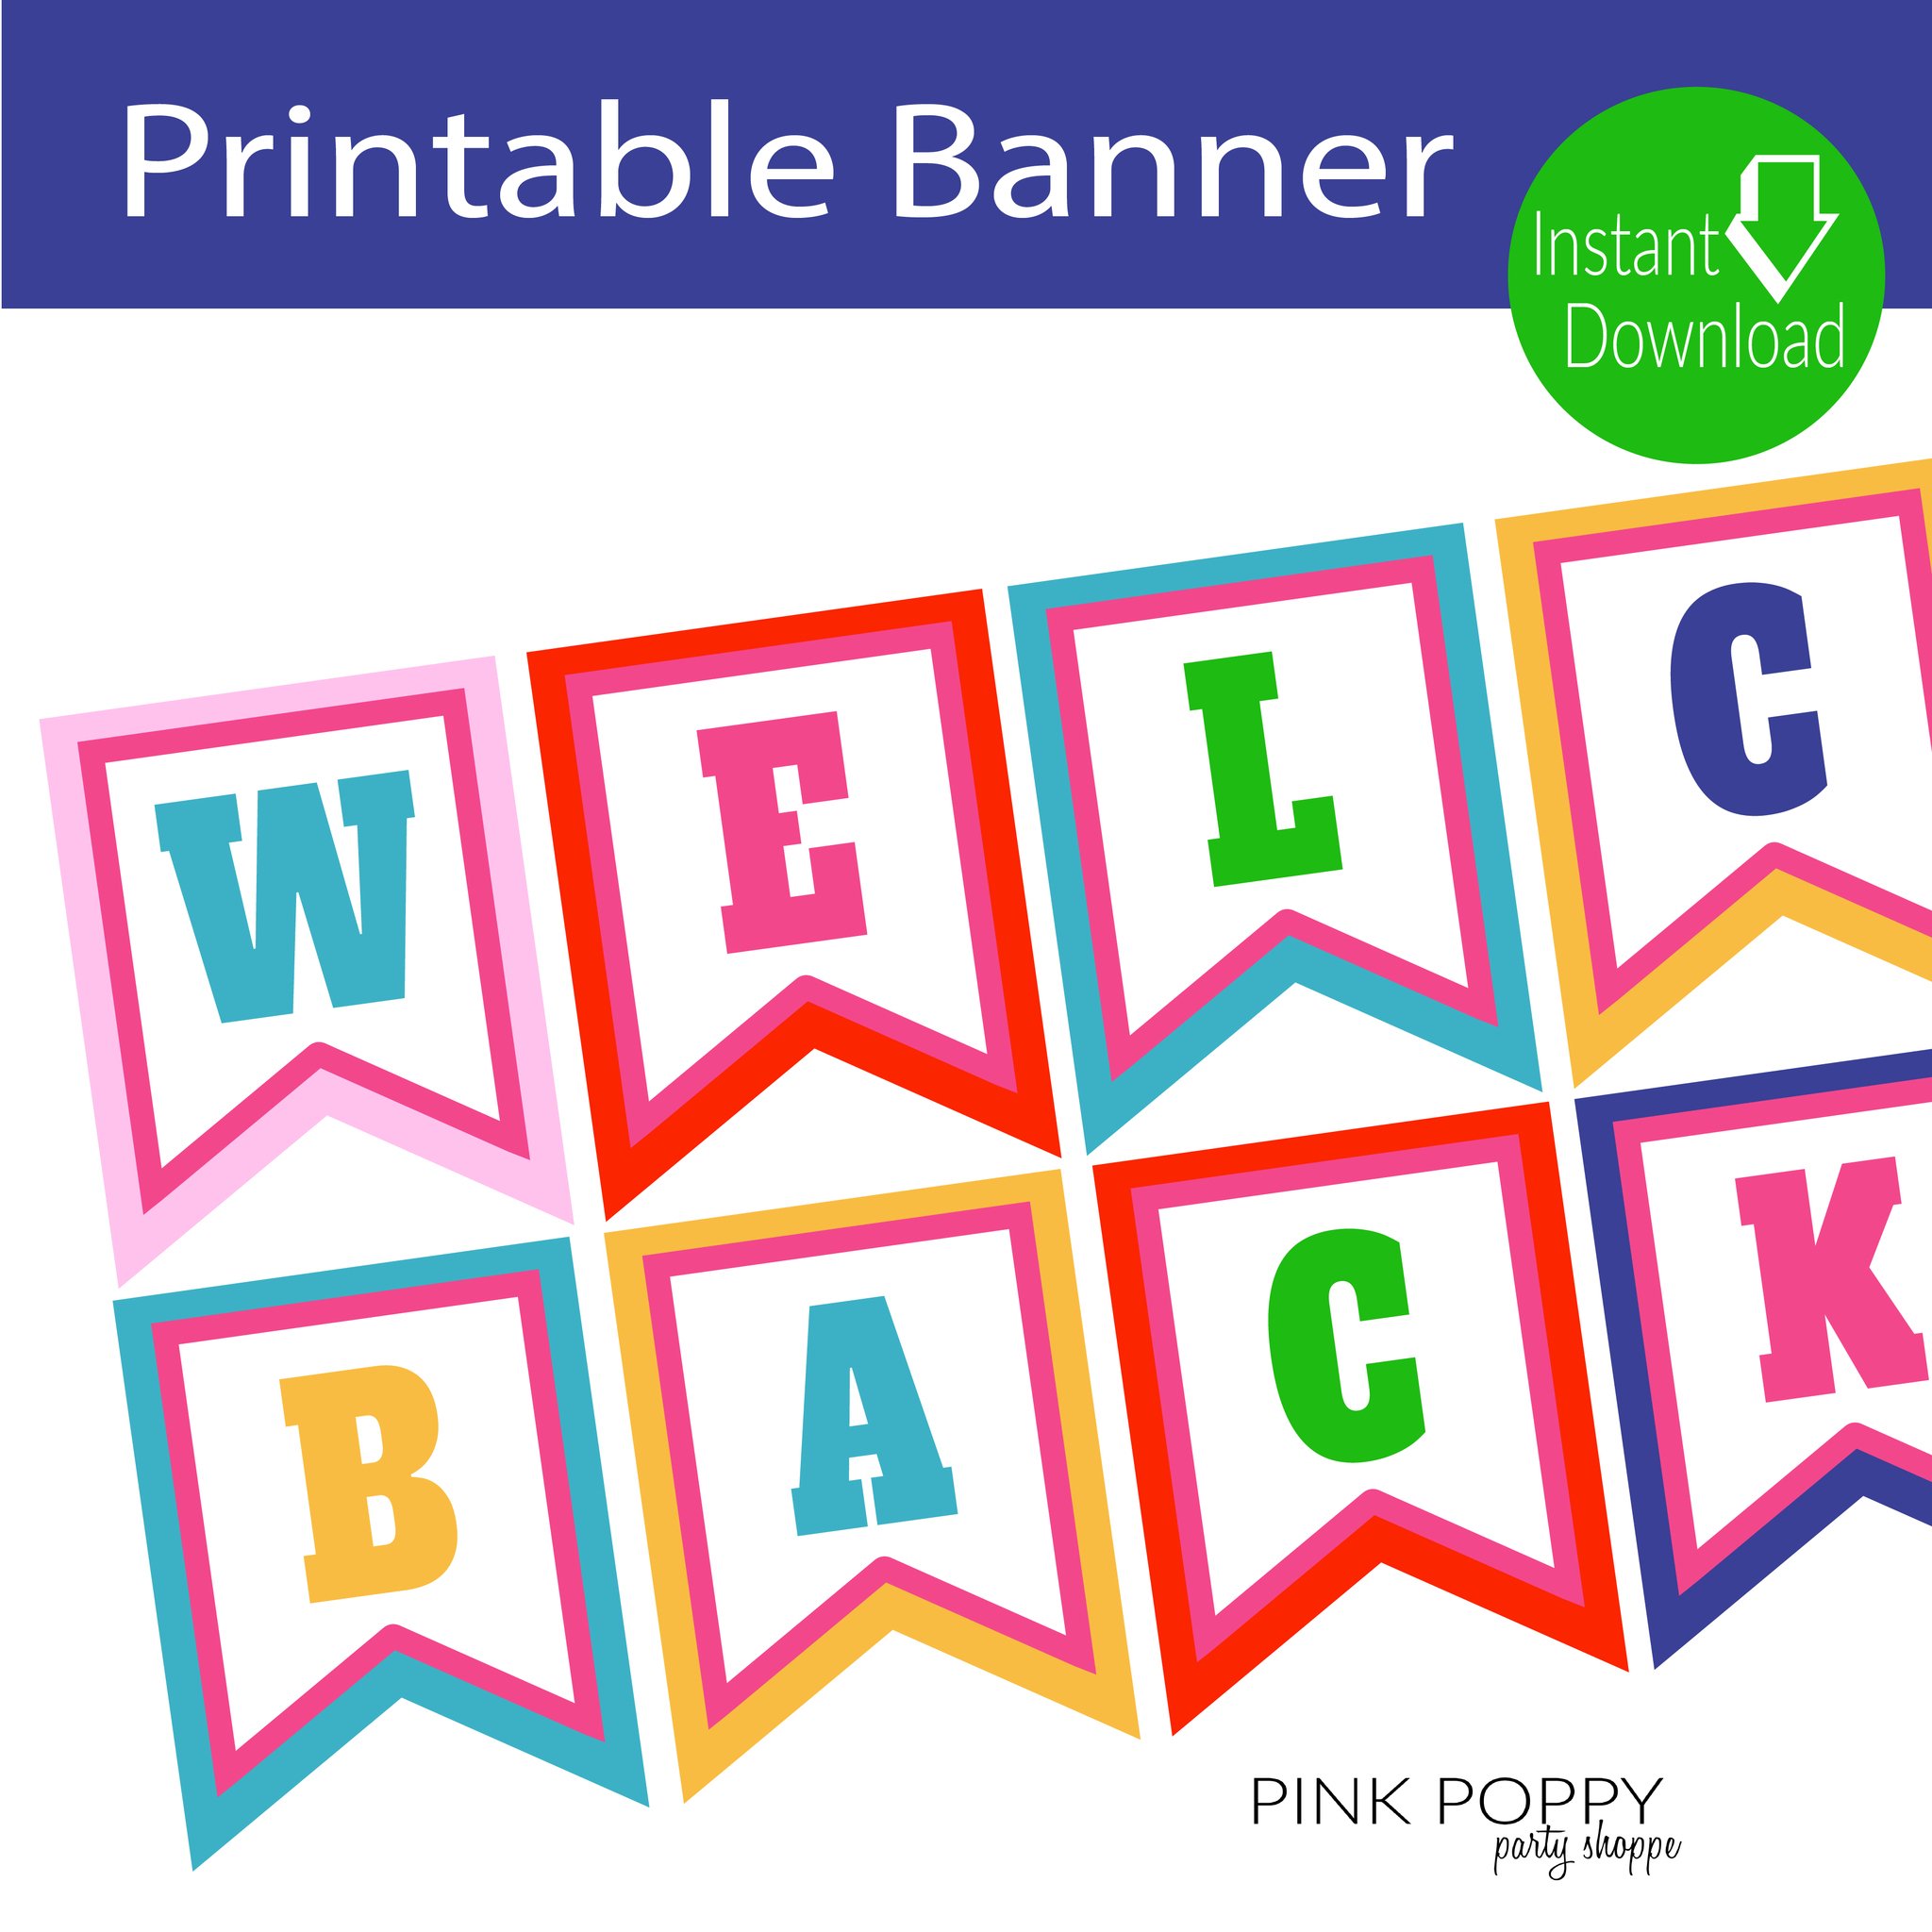 Free Printable Welcome Banner Template | Template Business - Free Printable Welcome Sign Template